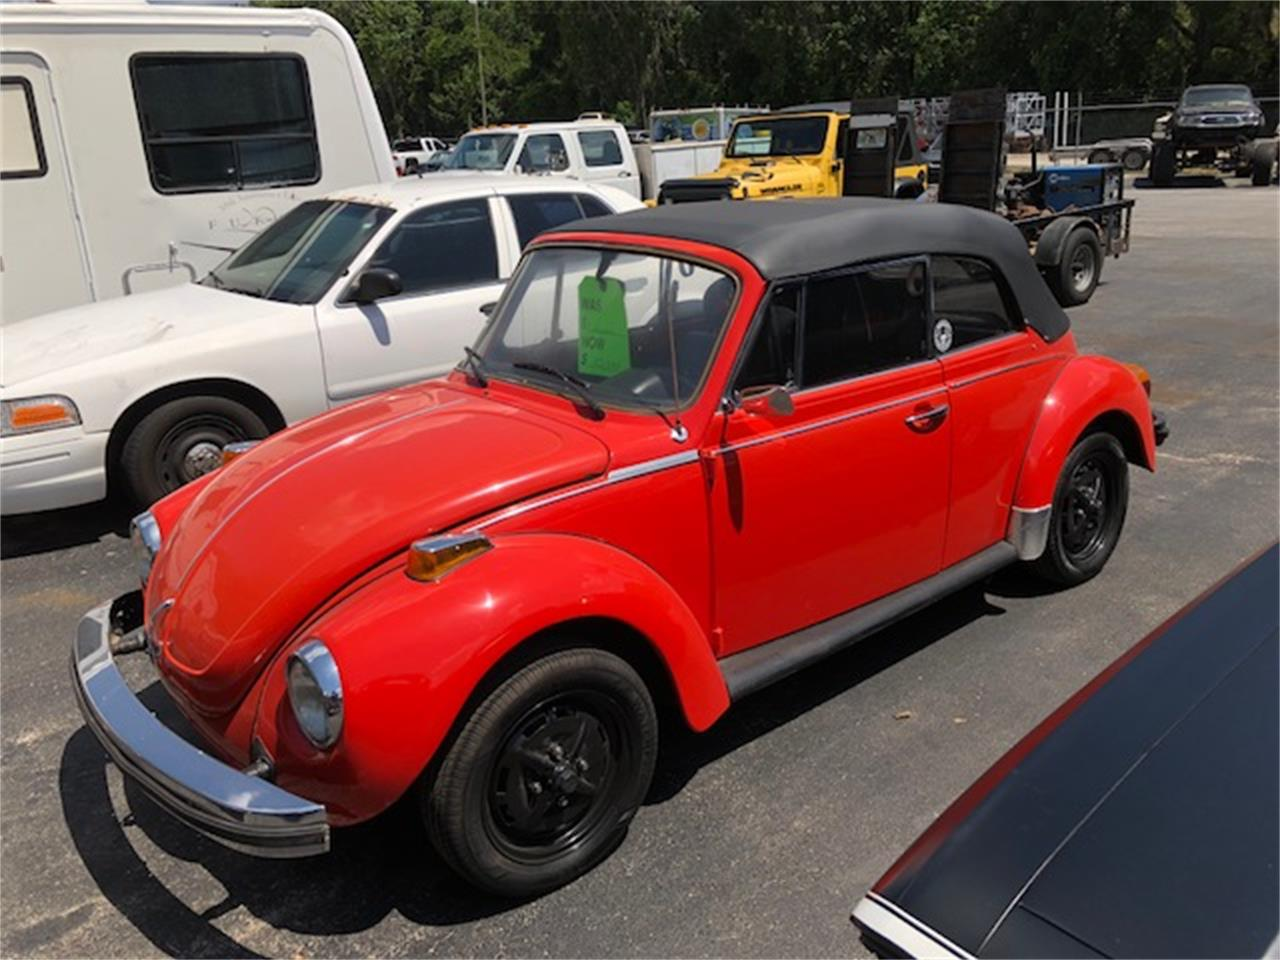 Volkswagen Super Beetle For Sale ClassicCarscom CC - Dade city fl car show